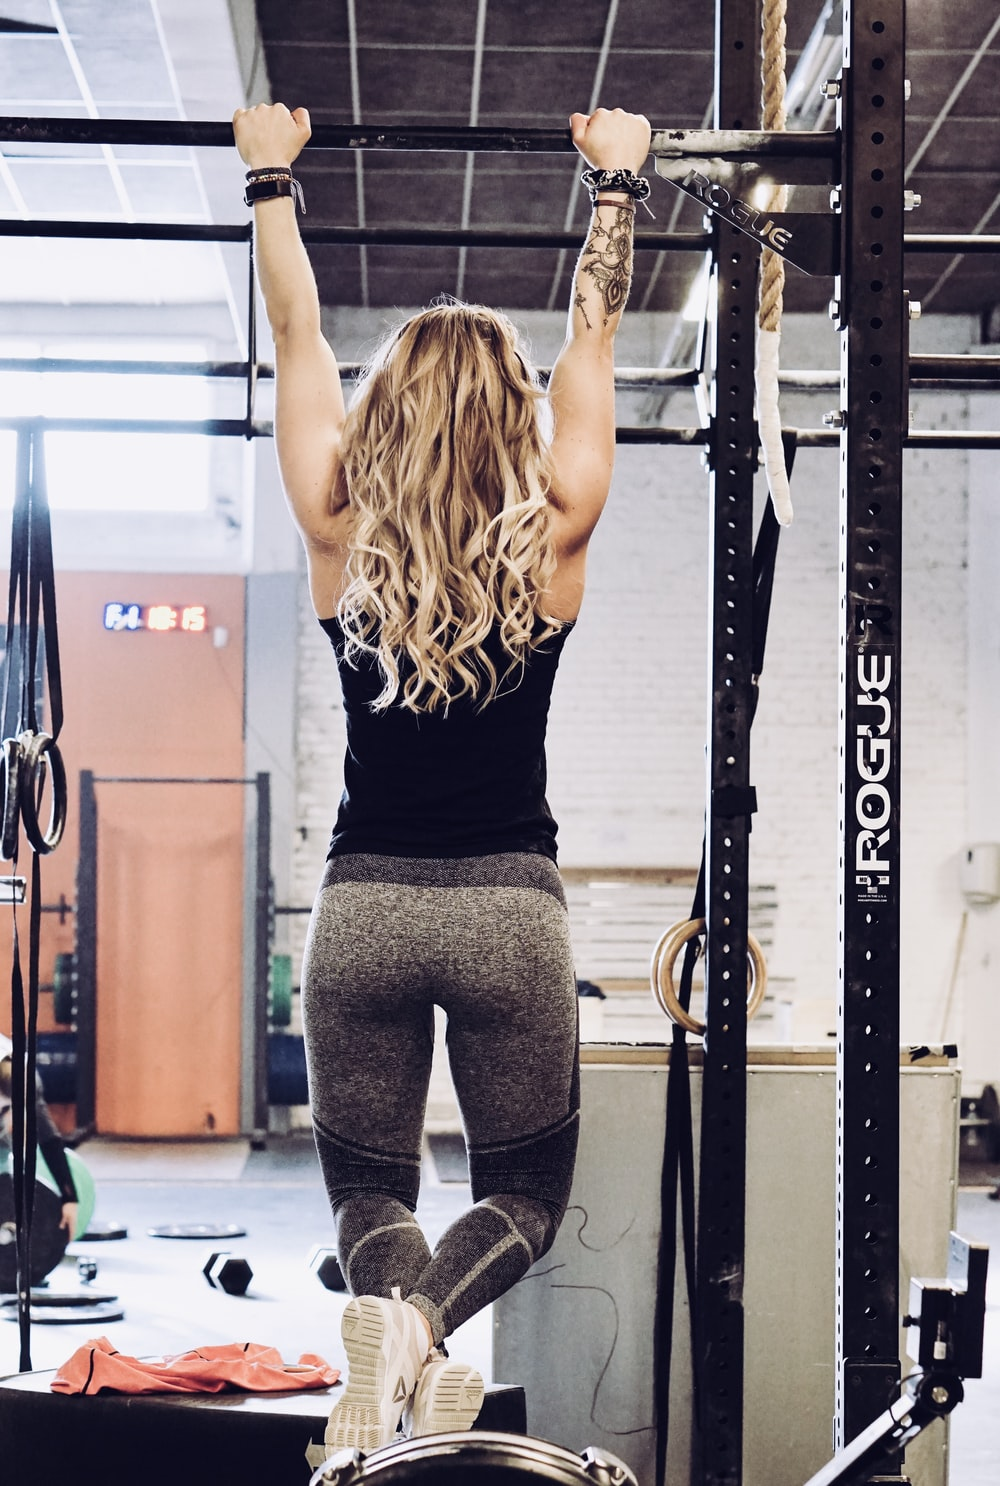 woman hanging on exercise equipment